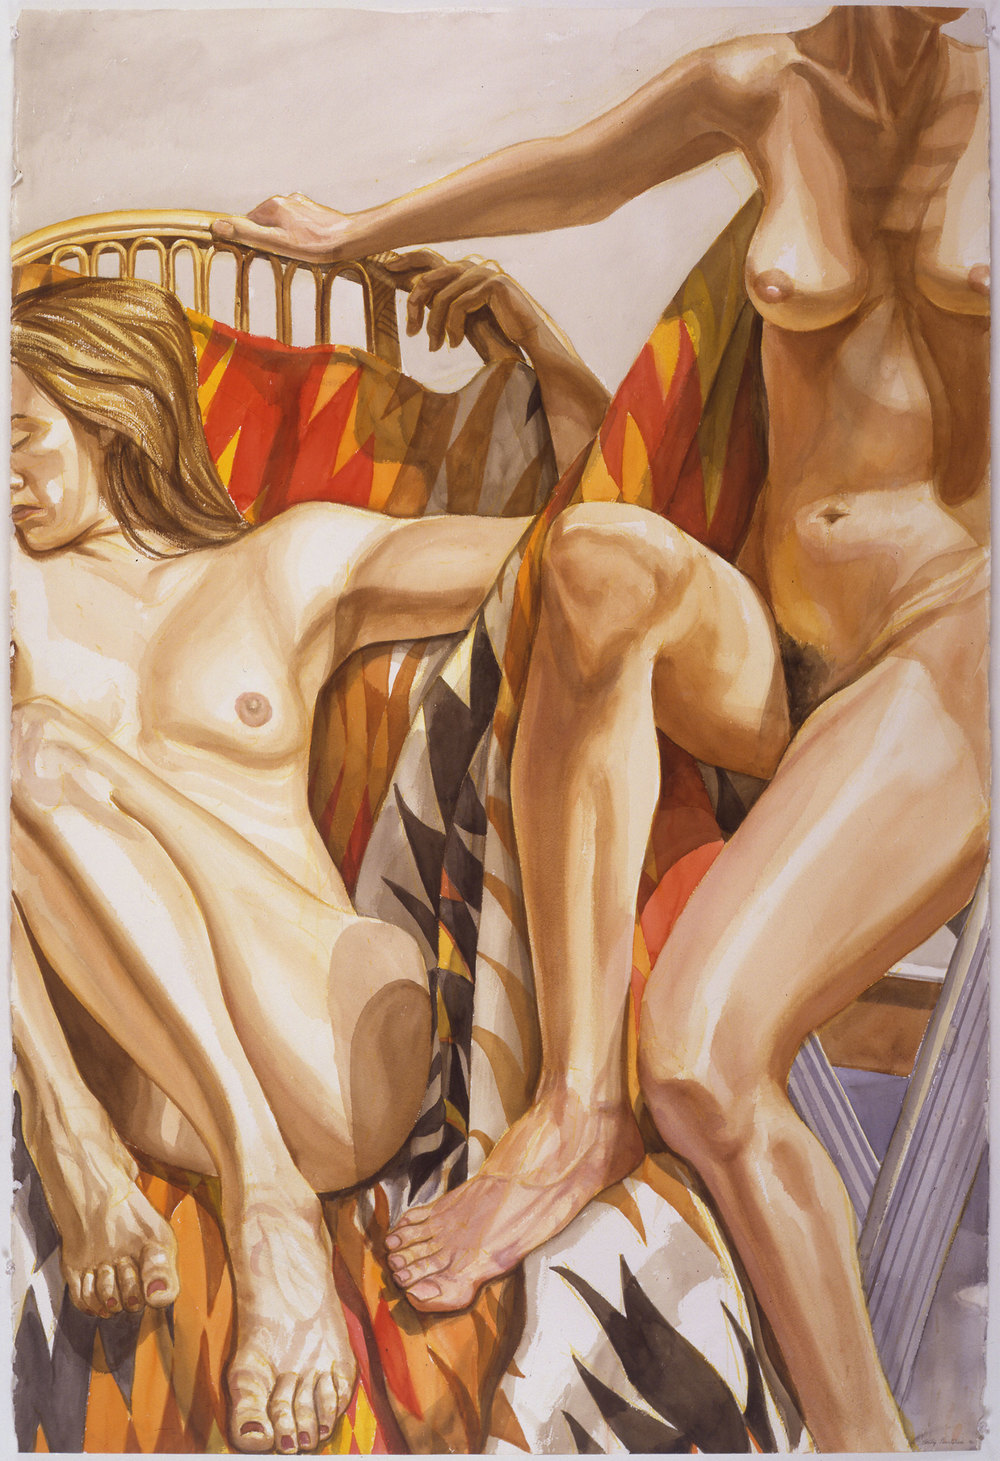 TWO NUDES WITH BAMBOO LOUNGE AND NAVAHO BLANKET,  1996 Watercolor on paper 60 x 40 1/4 inches